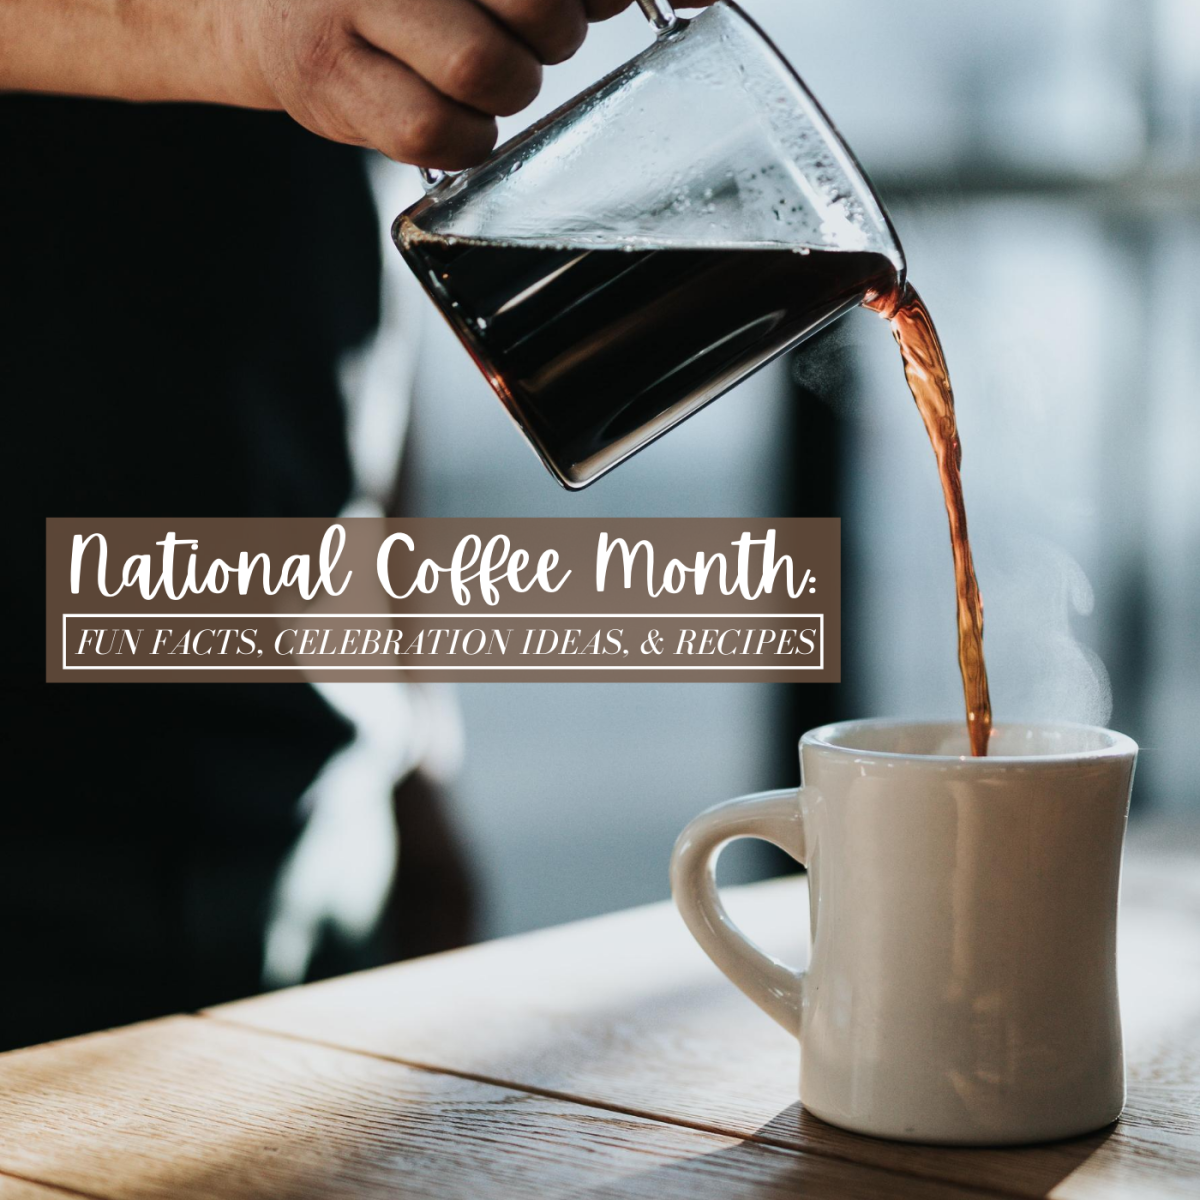 Celebration Ideas and Fun Facts for National Coffee Month